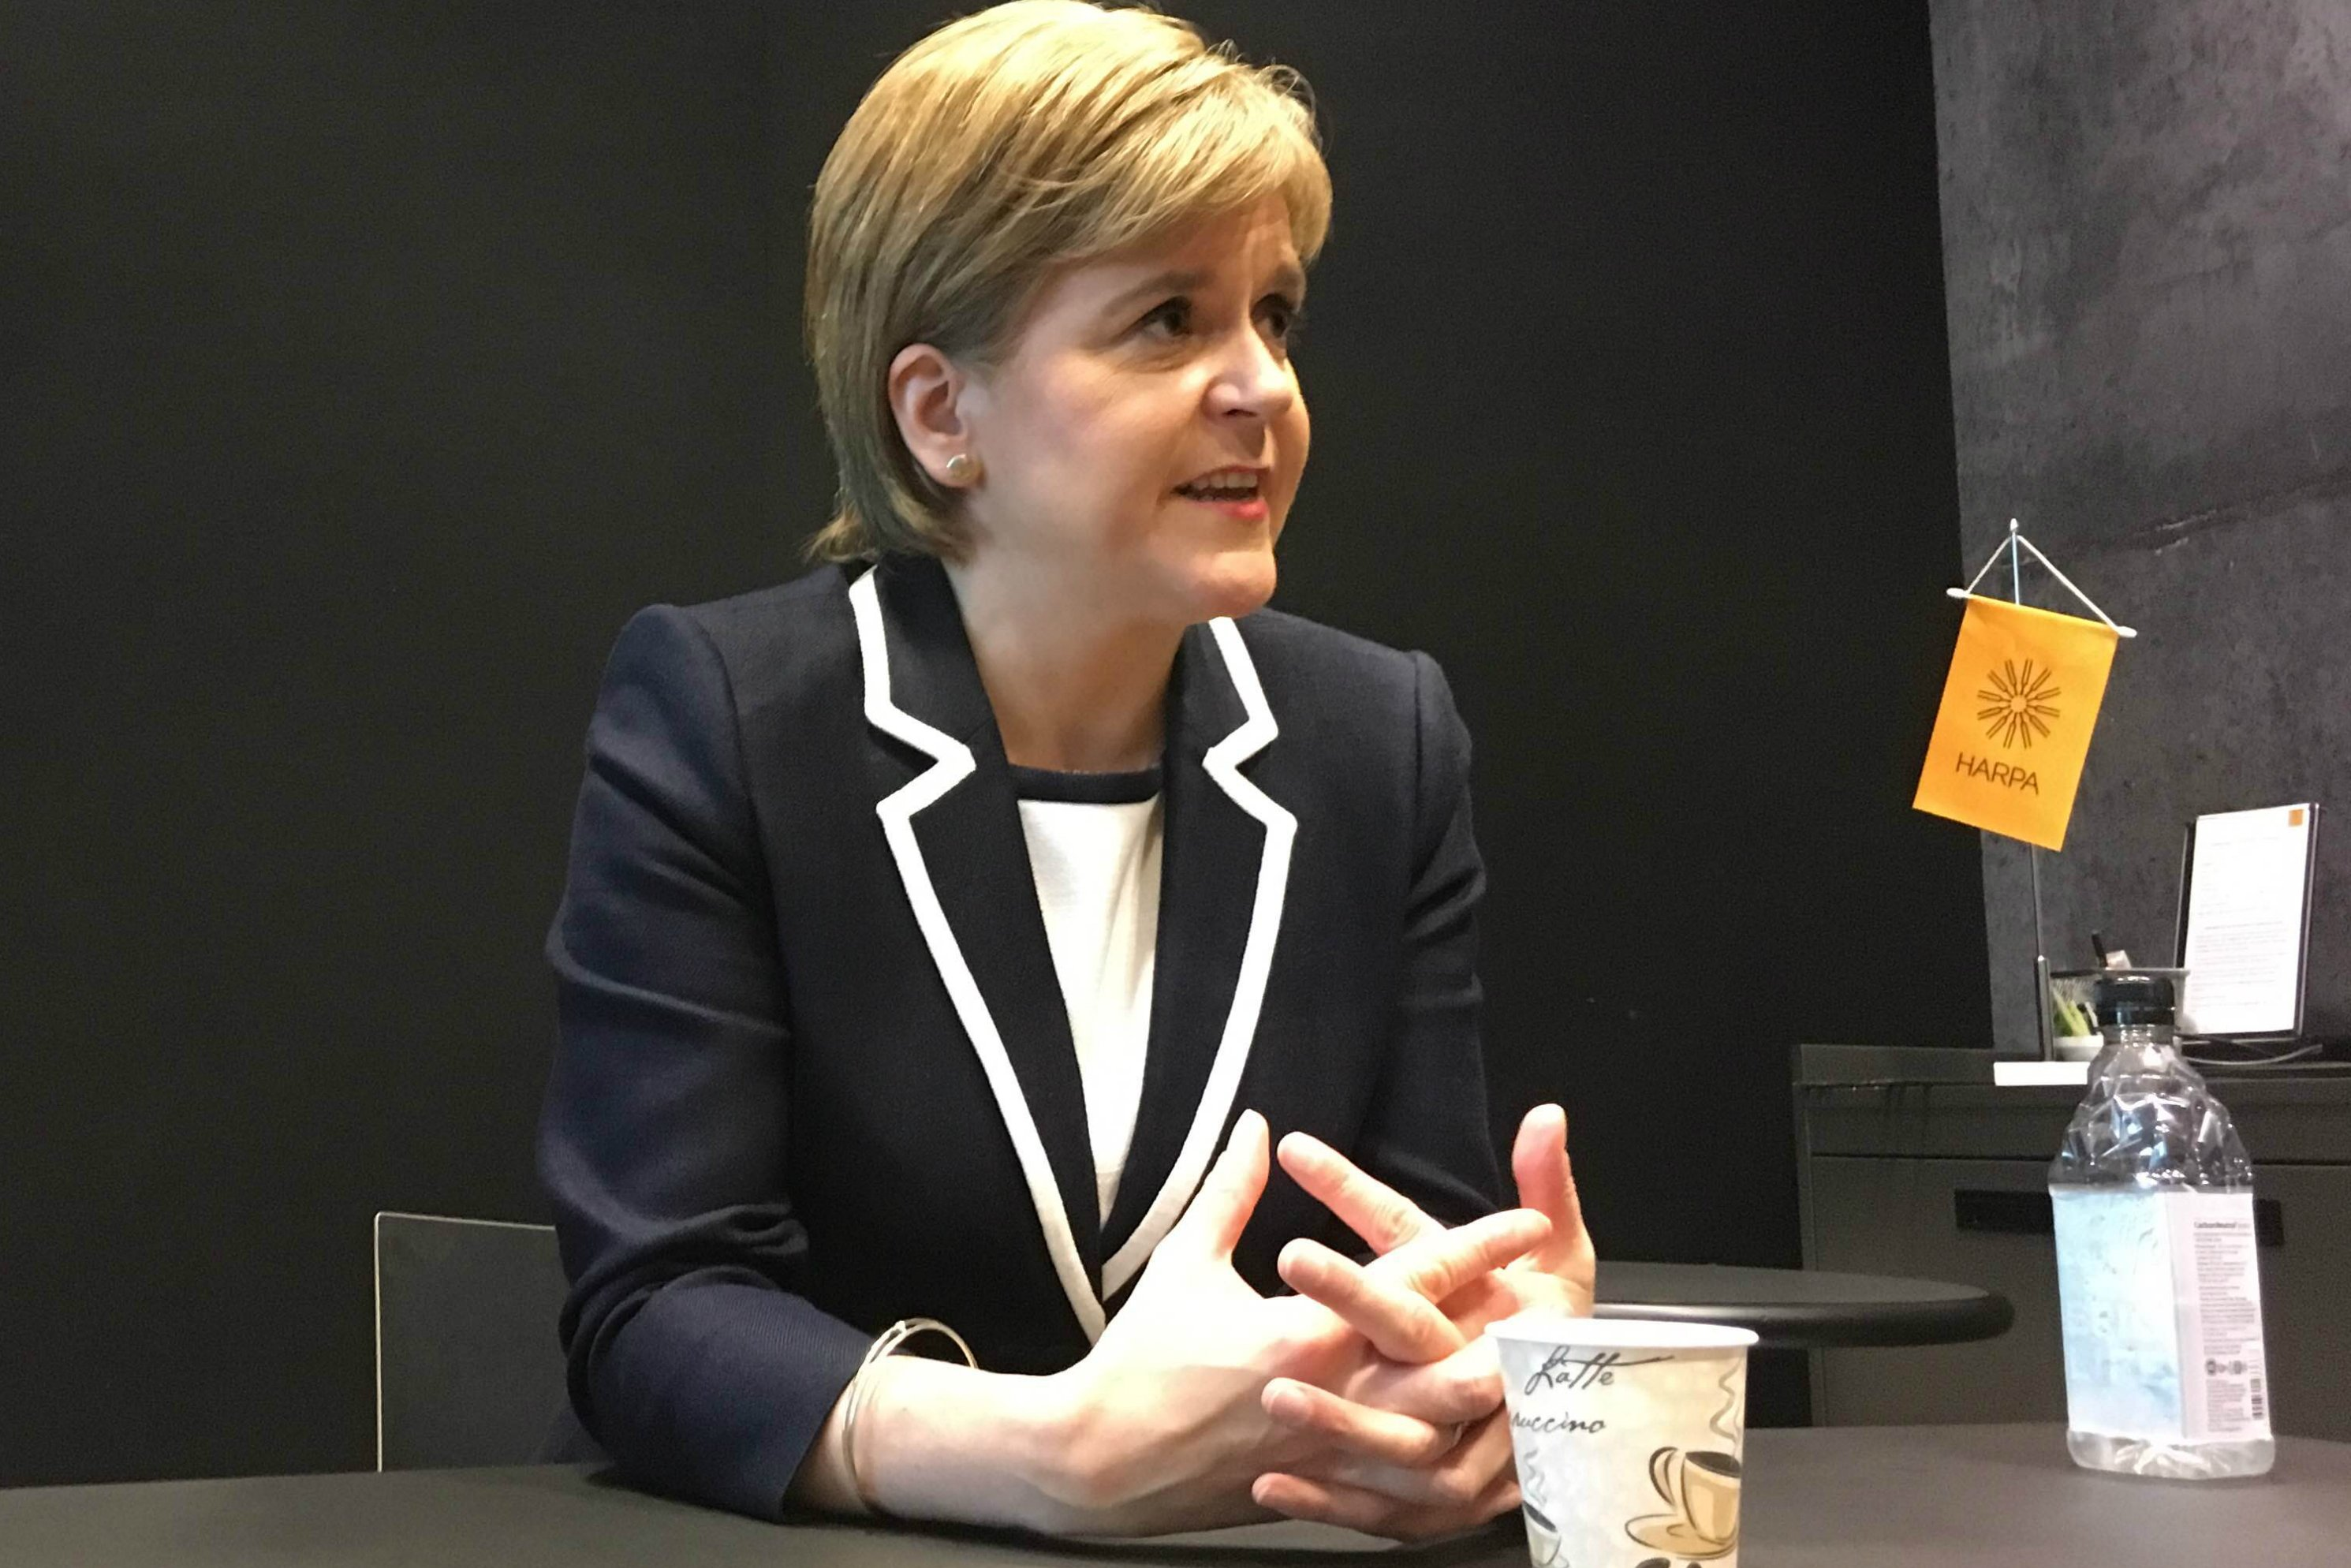 Scottish First Minister Nicola Sturgeon speaks of Scotland's ties to Nordic nations and the Arctic, at the Arctic Circle Assembly conference in Reykjavik, Iceland, October 7, 2016. (Krestia DeGeorge / Alaska Dispatch News)